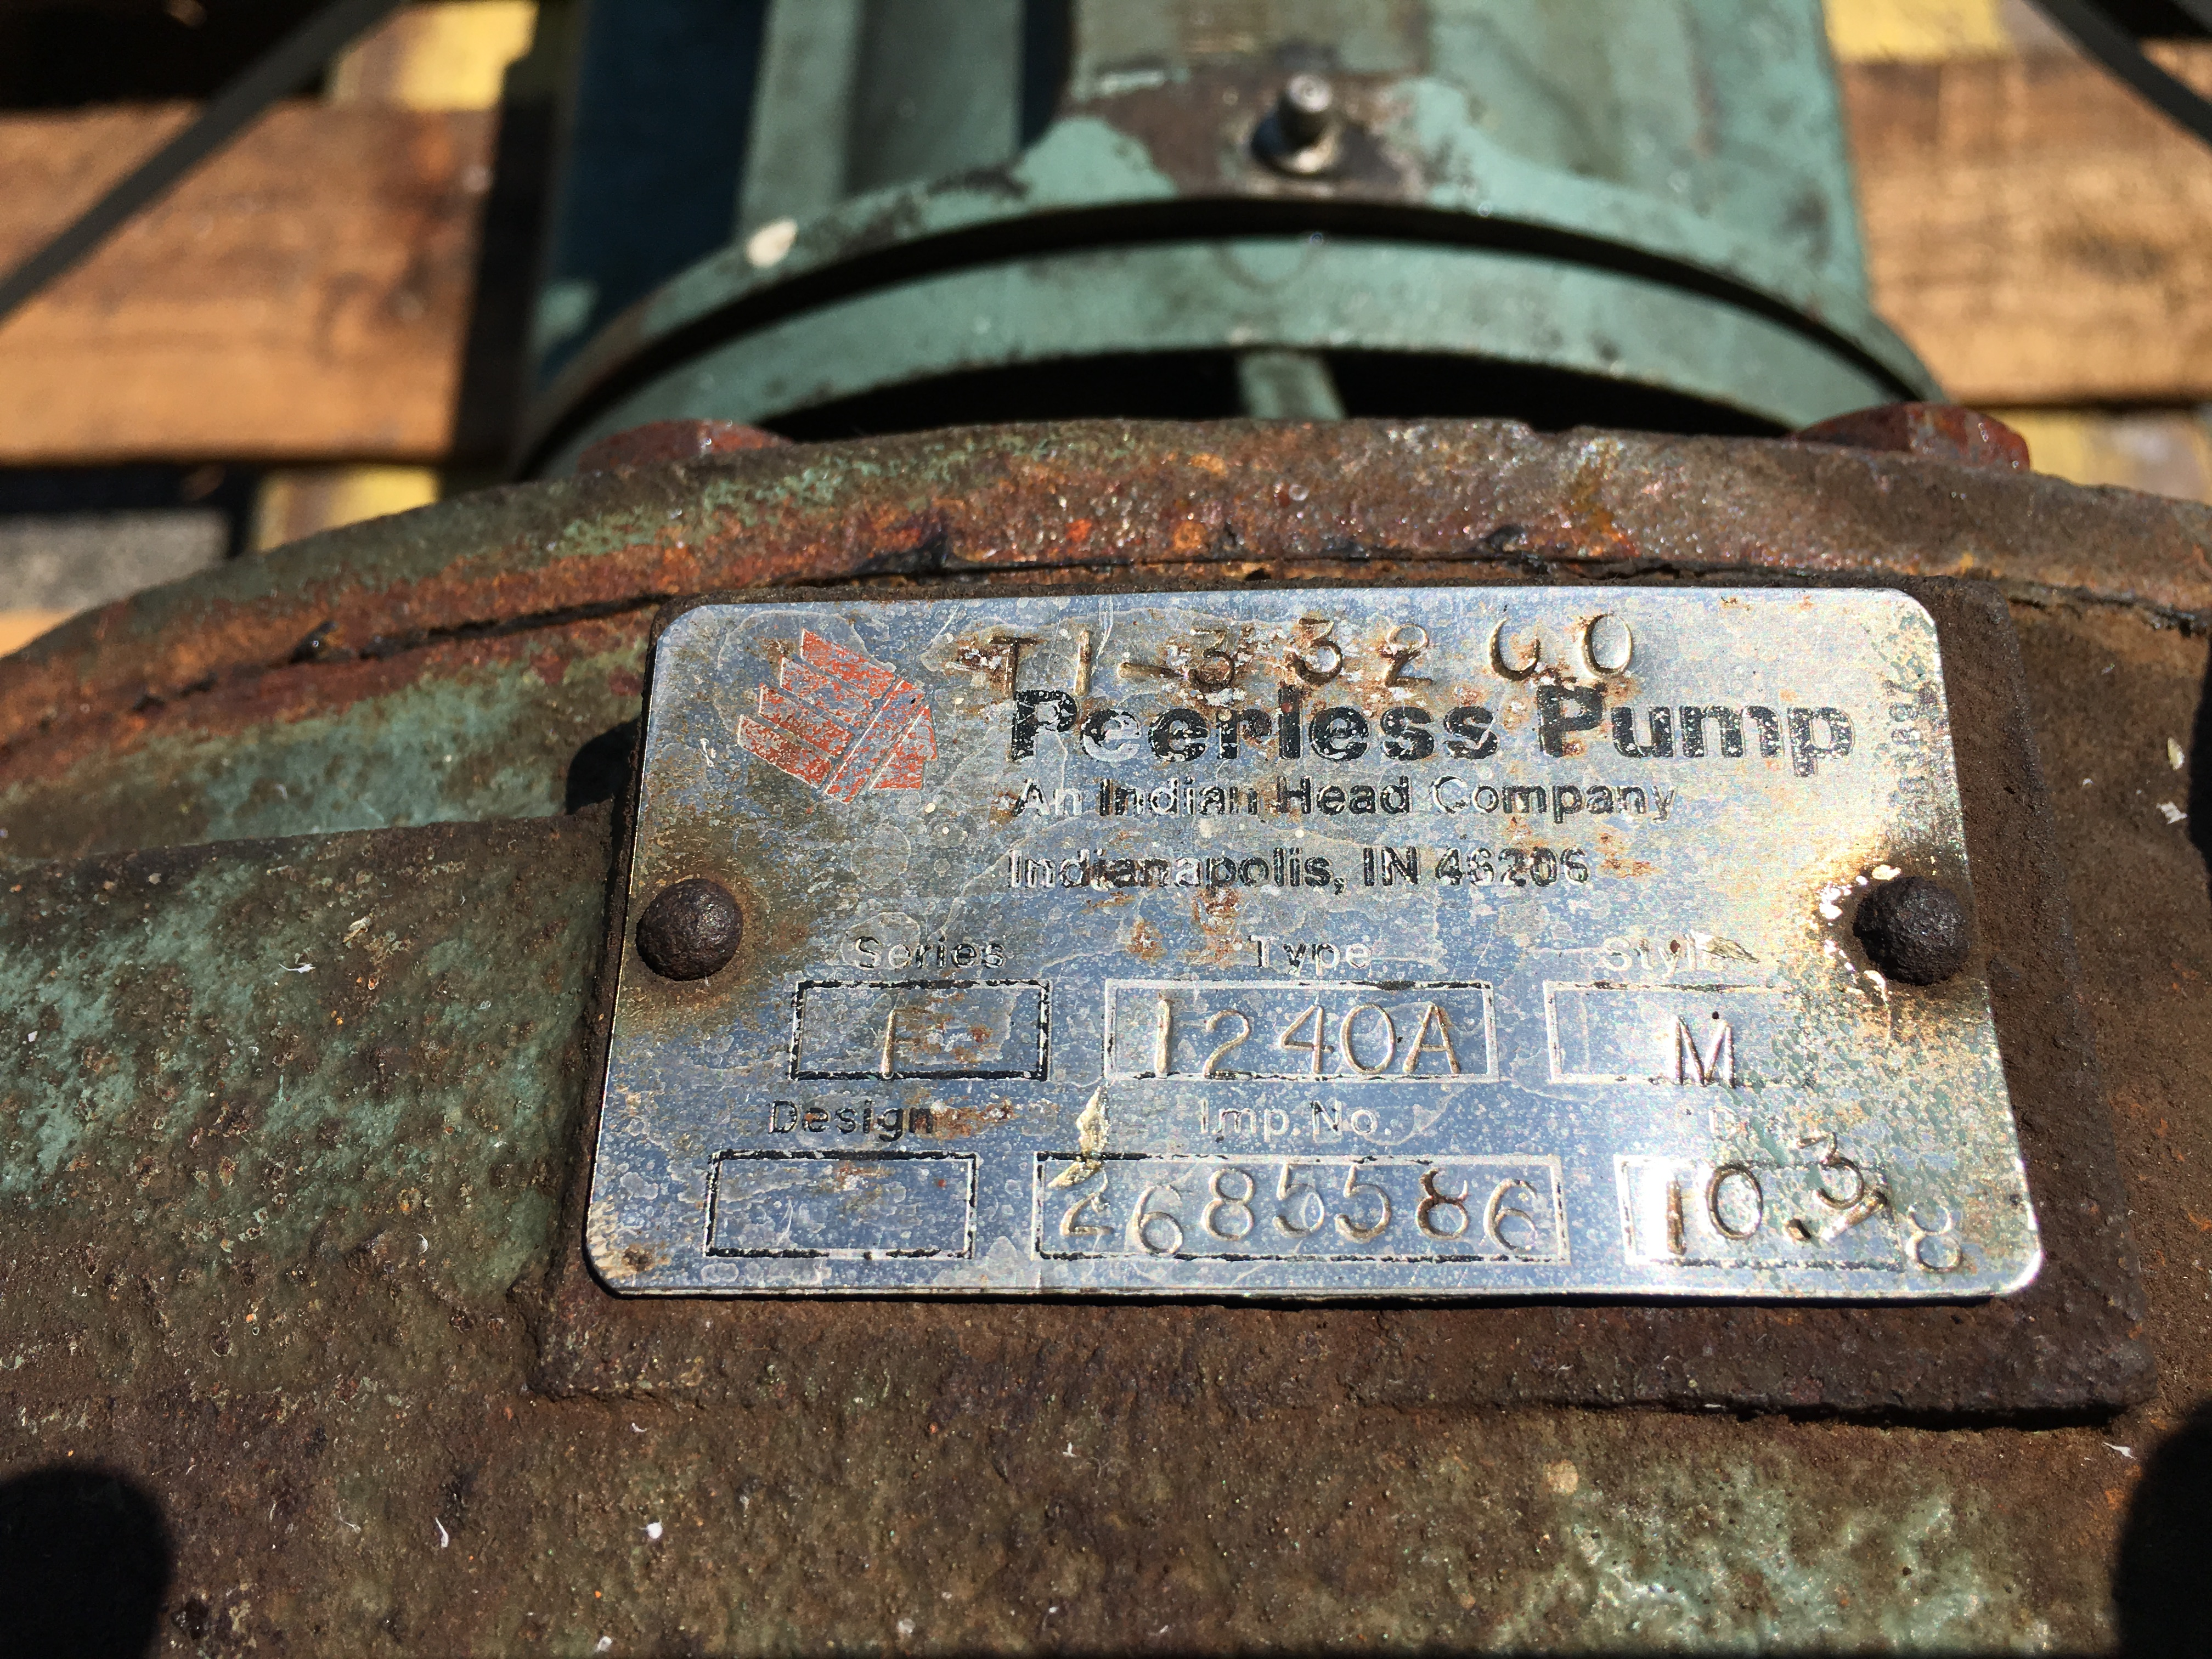 Used Peerless Series F, Type 1240A, Style M centrifugal pump(SOLD)